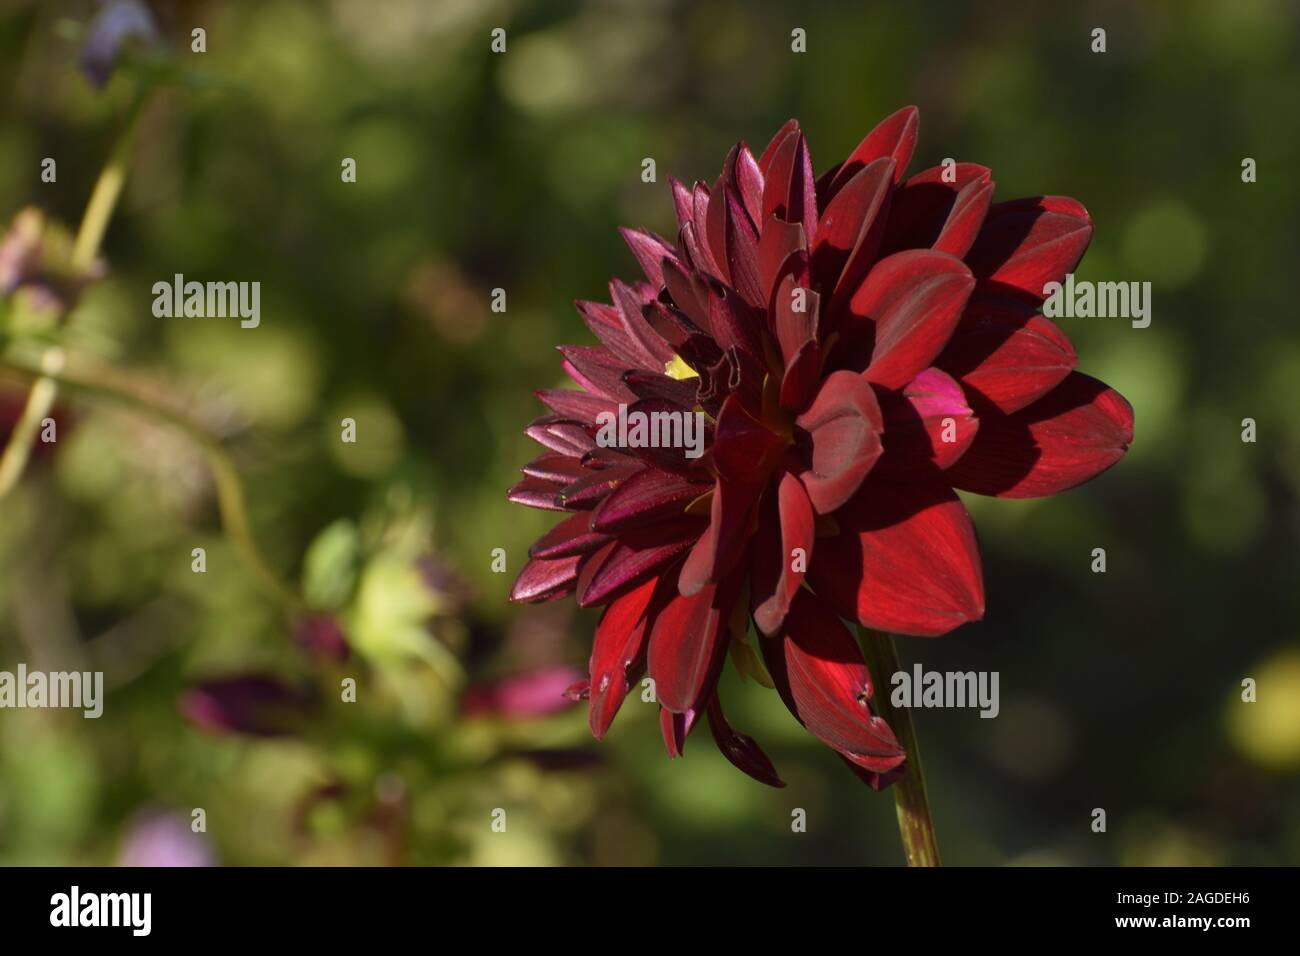 A Selective Focus Shot Of A Dahlia Perennial Plant Growing In The